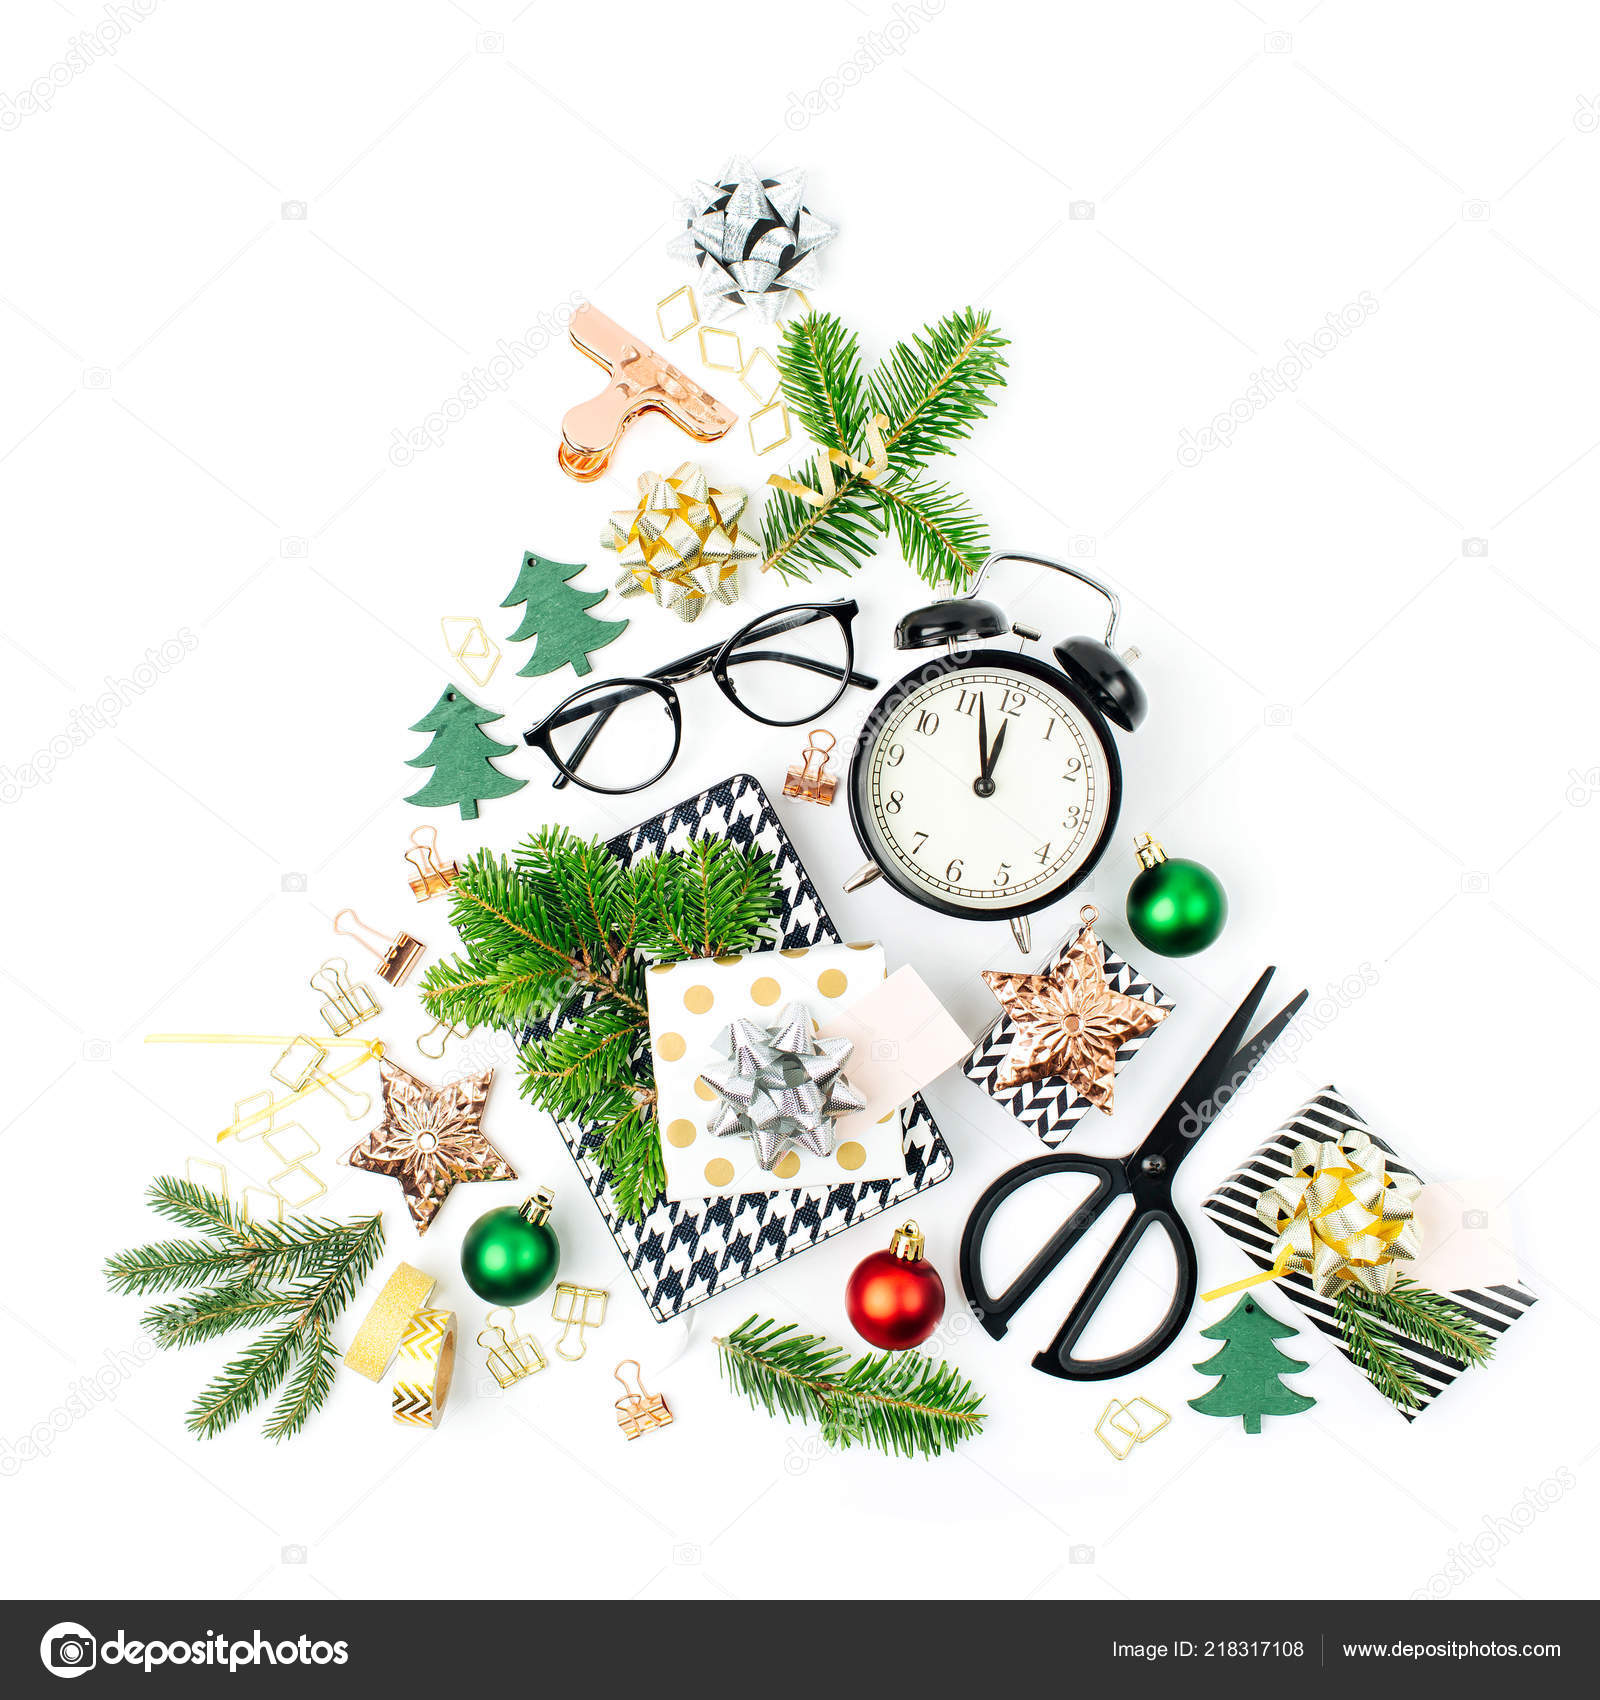 Christmas Tree Made Winter Decorations Stationery Alarm Clock Gifts